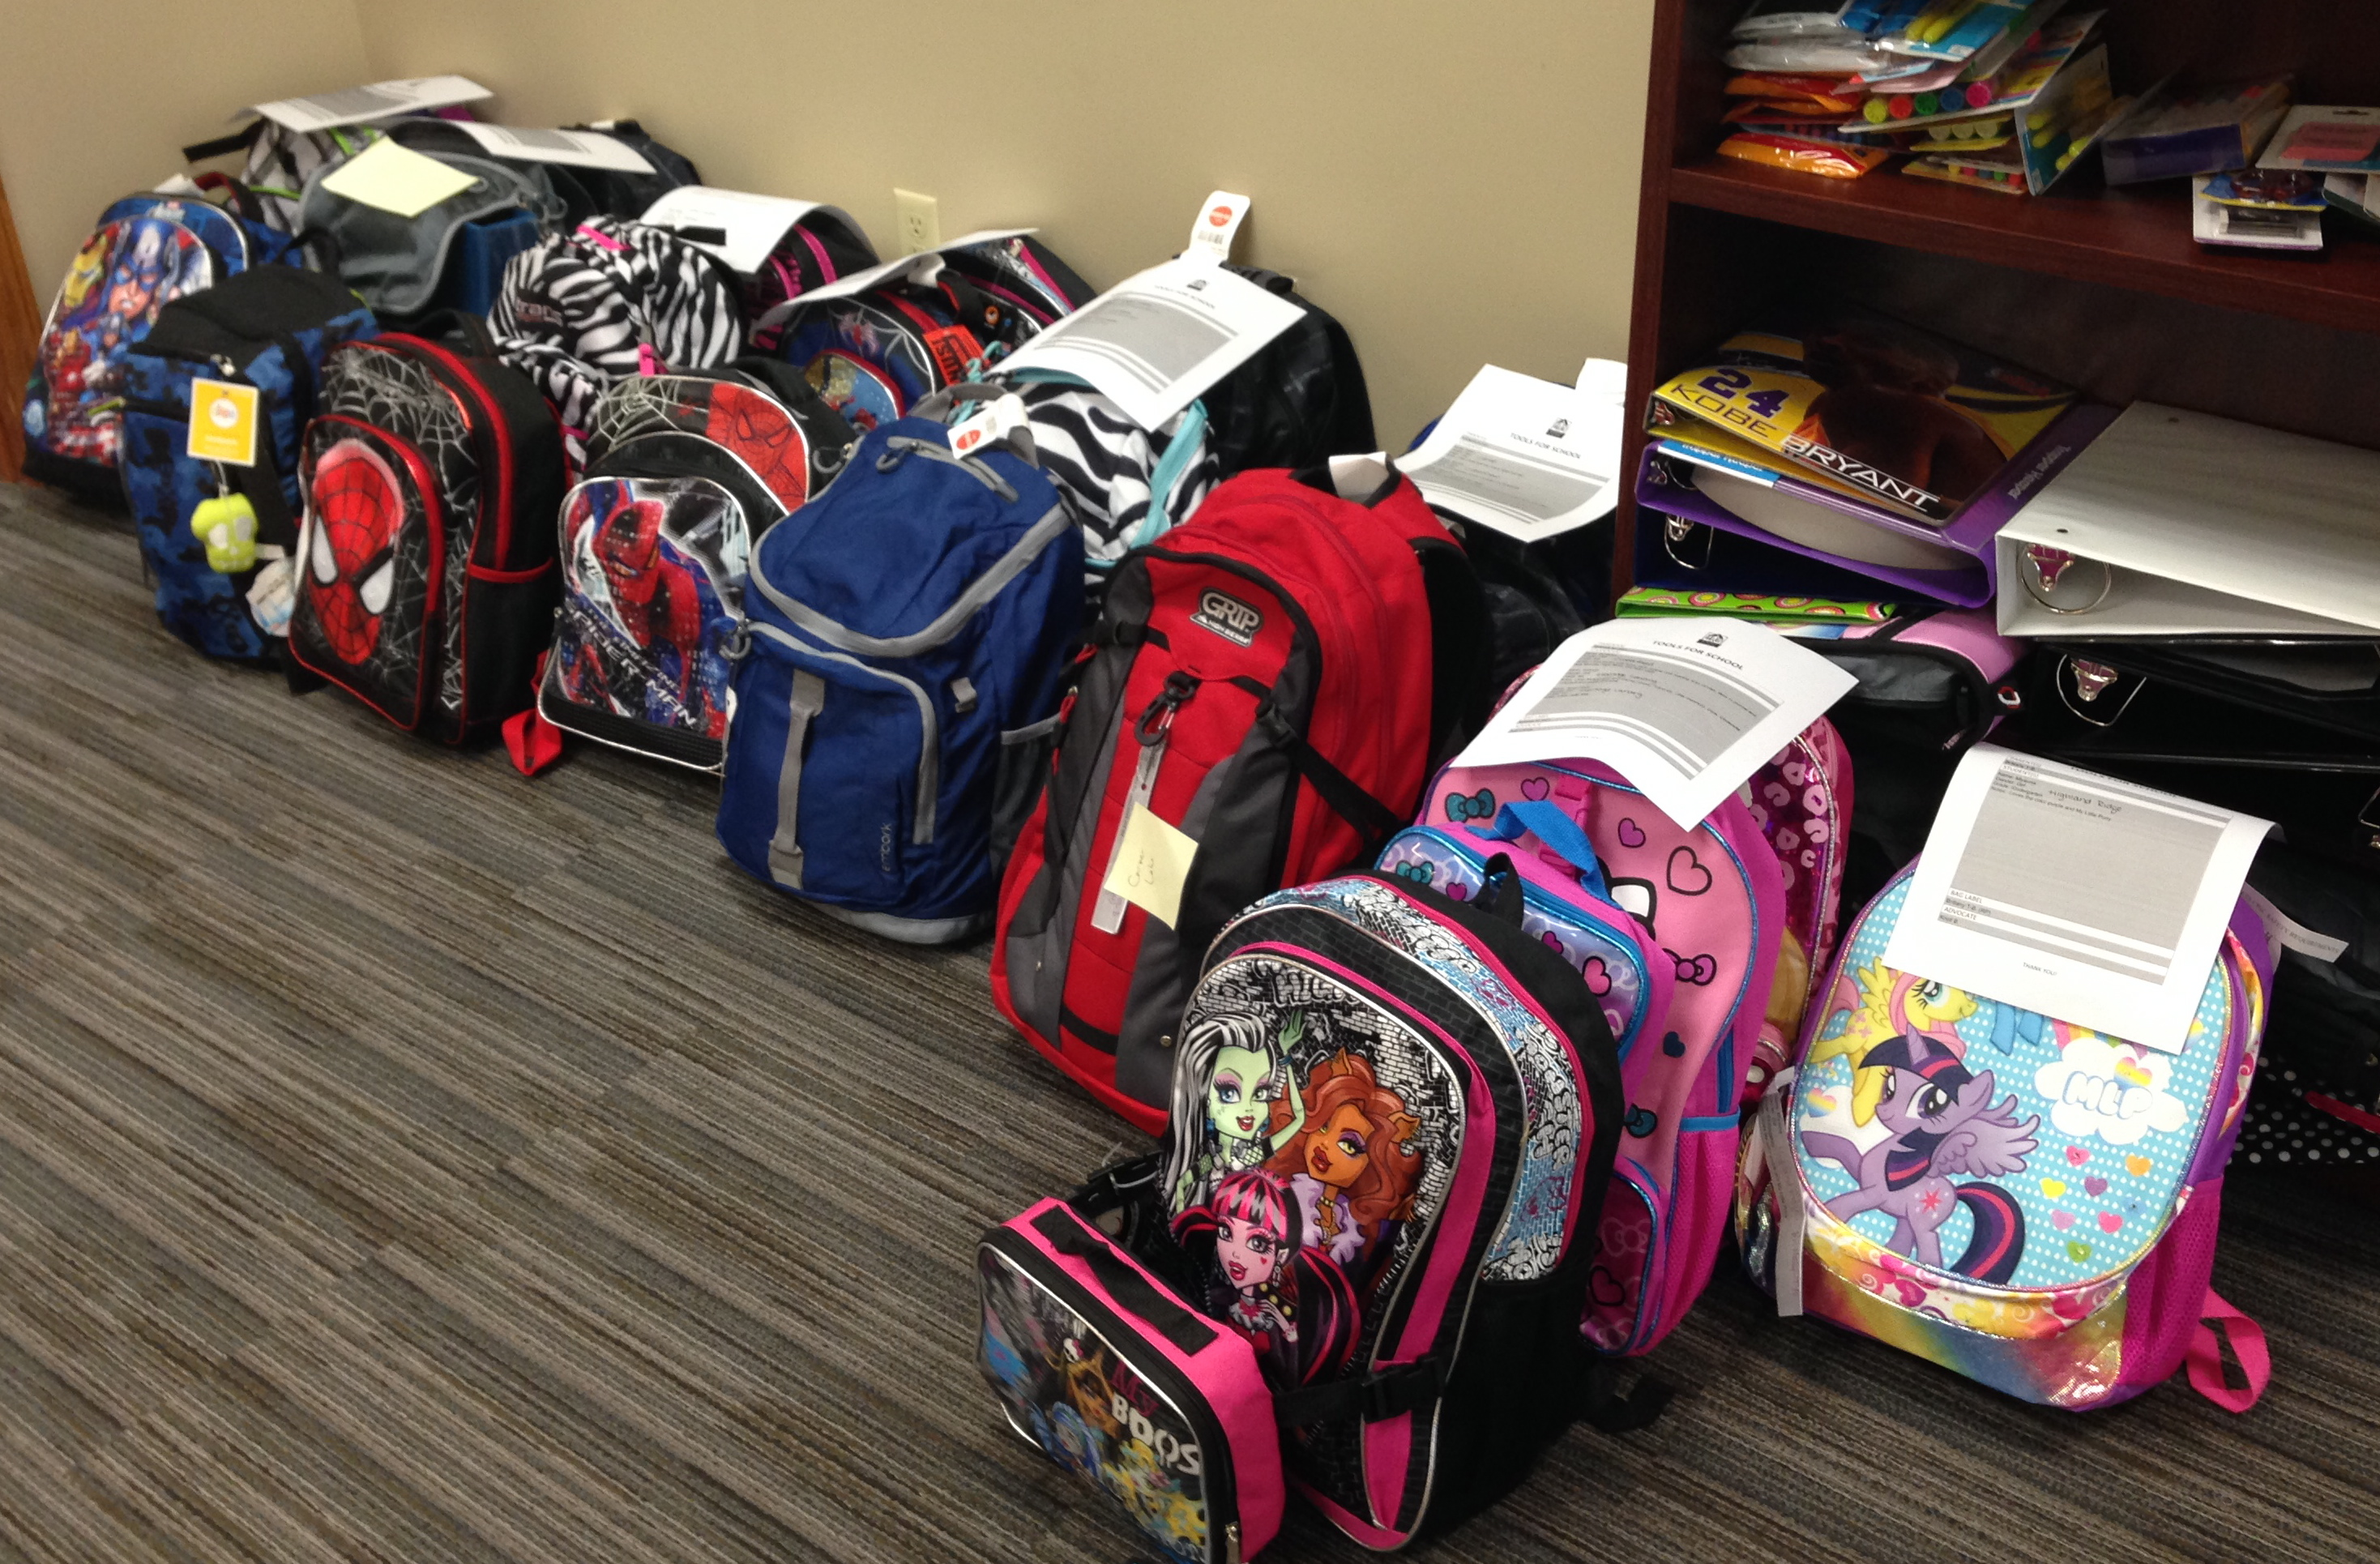 272eb3e30c Our awesome residents provided us with enough school supplies for not only  the 22 backpacks we set out to fill